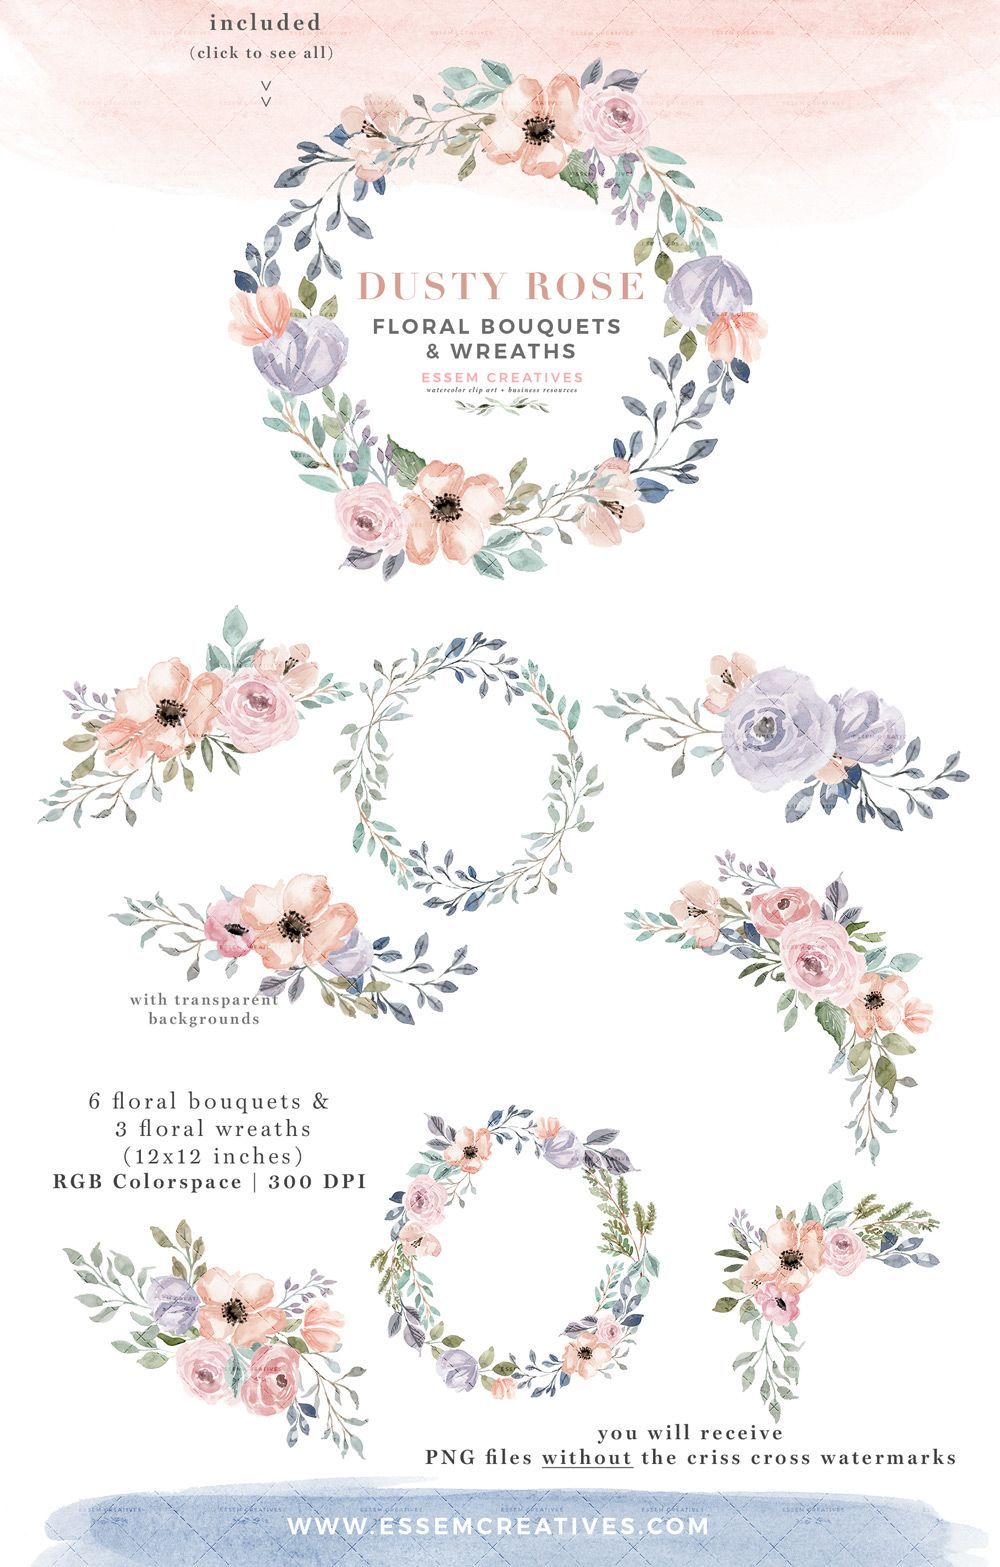 Flower Bouquets Dusty Peach Wedding Clipart Hand Painted Floral Clip Art Watercolor Floral Clipart Set Pink /& Navy Flowers Floral PNG